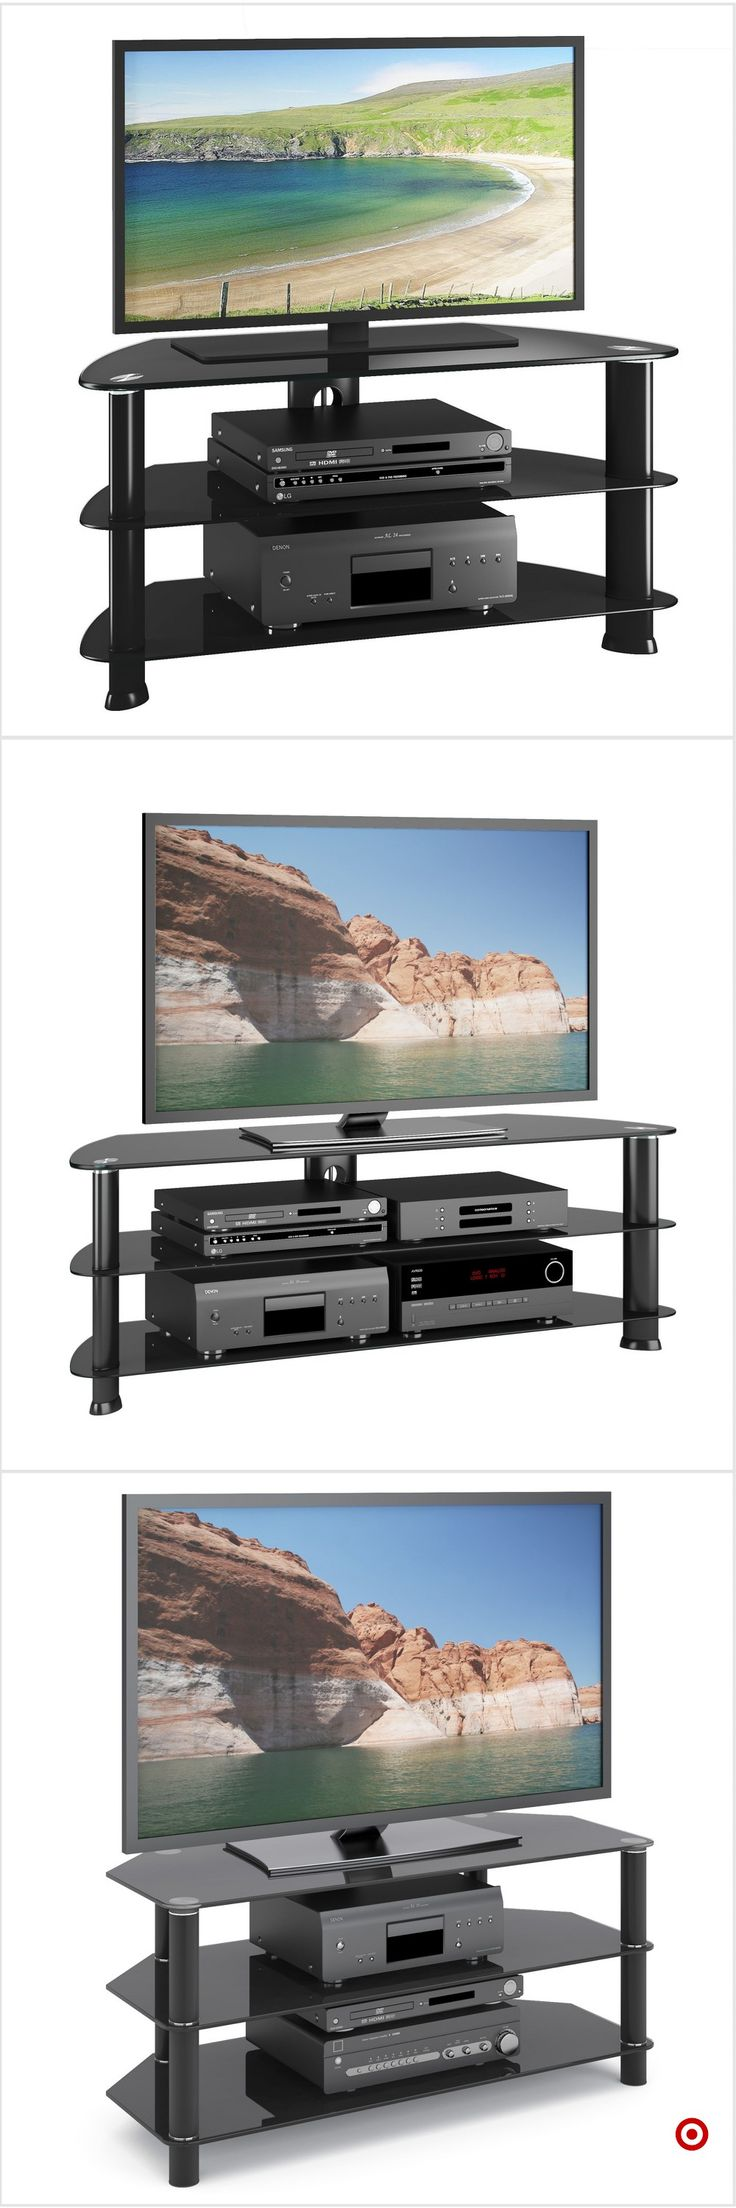 Tv television stands austin s furniture - Best 25 Low Tv Stand Ideas On Pinterest Living Room Tv Ikea Tv And Ikea Tv Stand